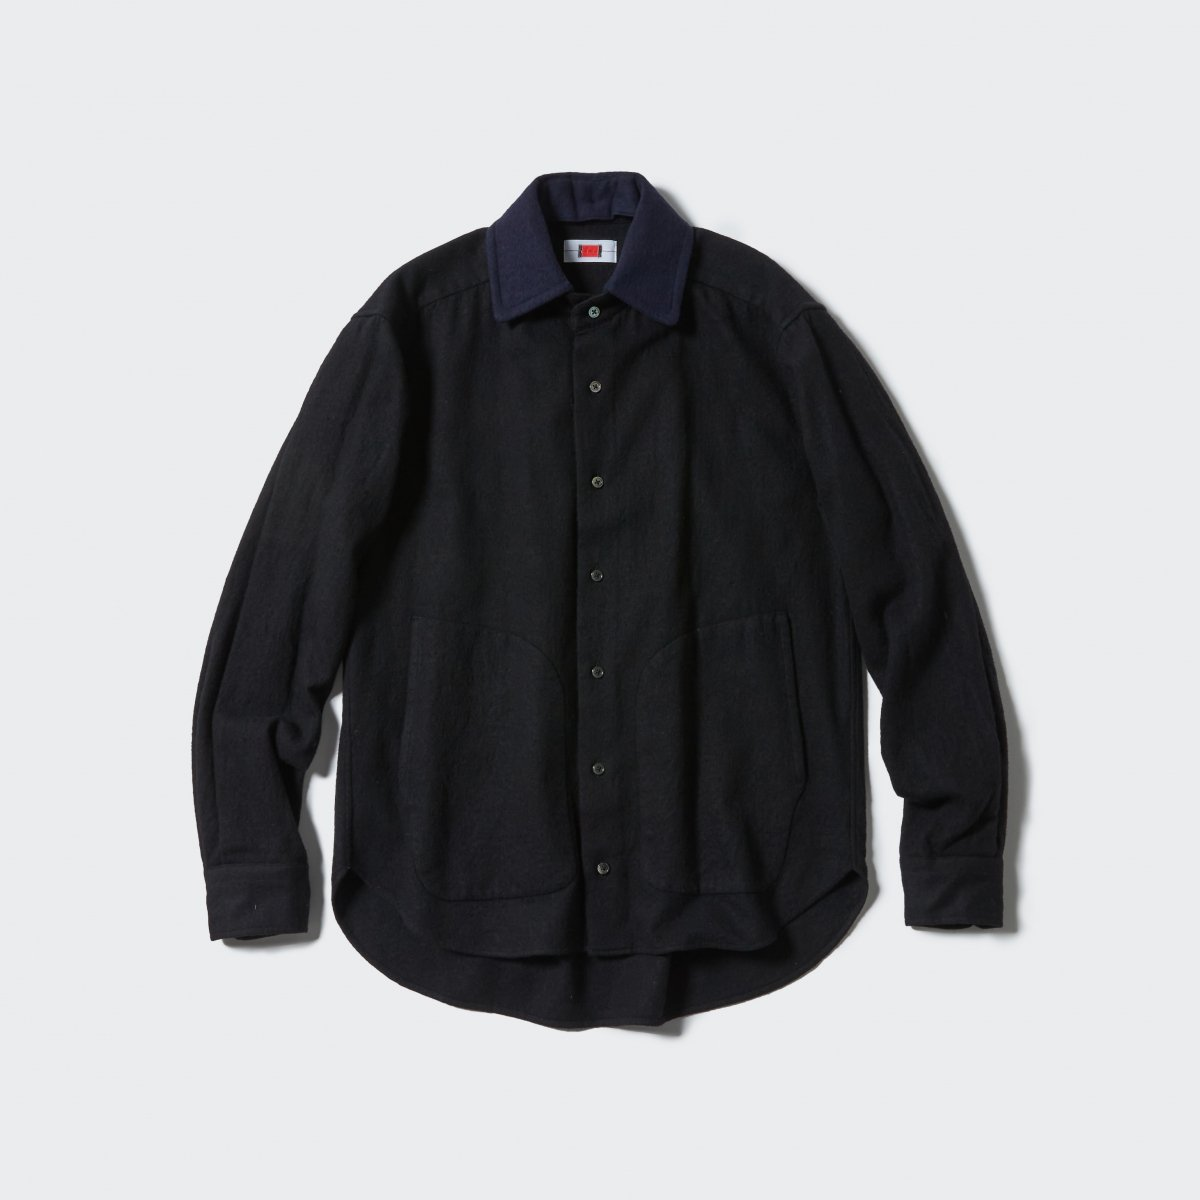 <img class='new_mark_img1' src='https://img.shop-pro.jp/img/new/icons5.gif' style='border:none;display:inline;margin:0px;padding:0px;width:auto;' />【2021AW】RPC HAIRBALL SHIRT | BLACK+NAVY